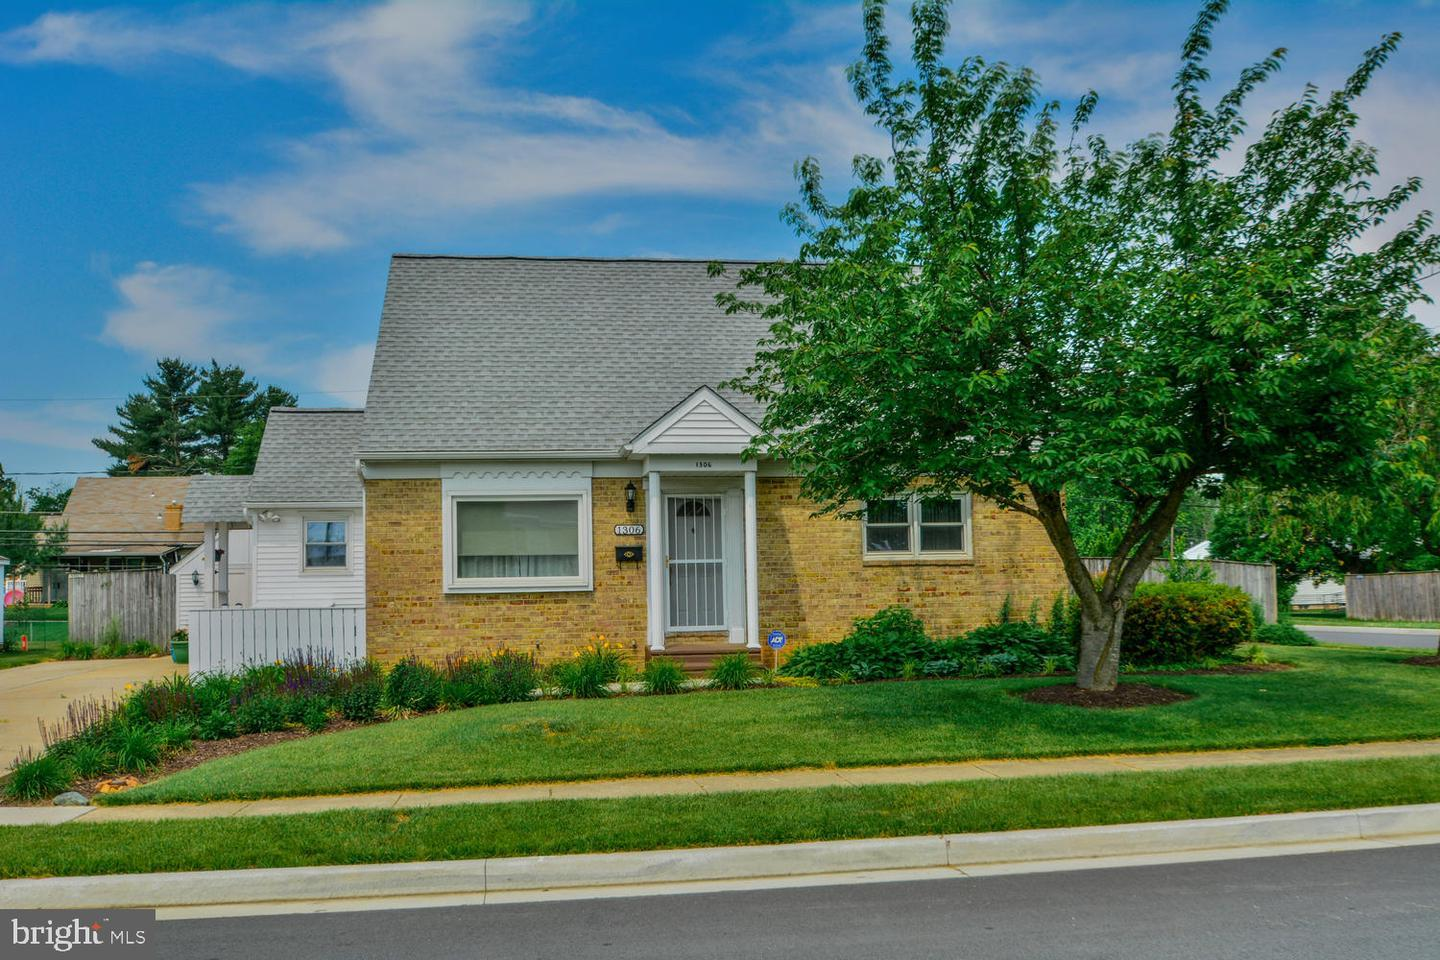 f58b442553524d 1306 Denbright Rd, Catonsville, MD 21228 | Image #1 of 63 from carousel ...